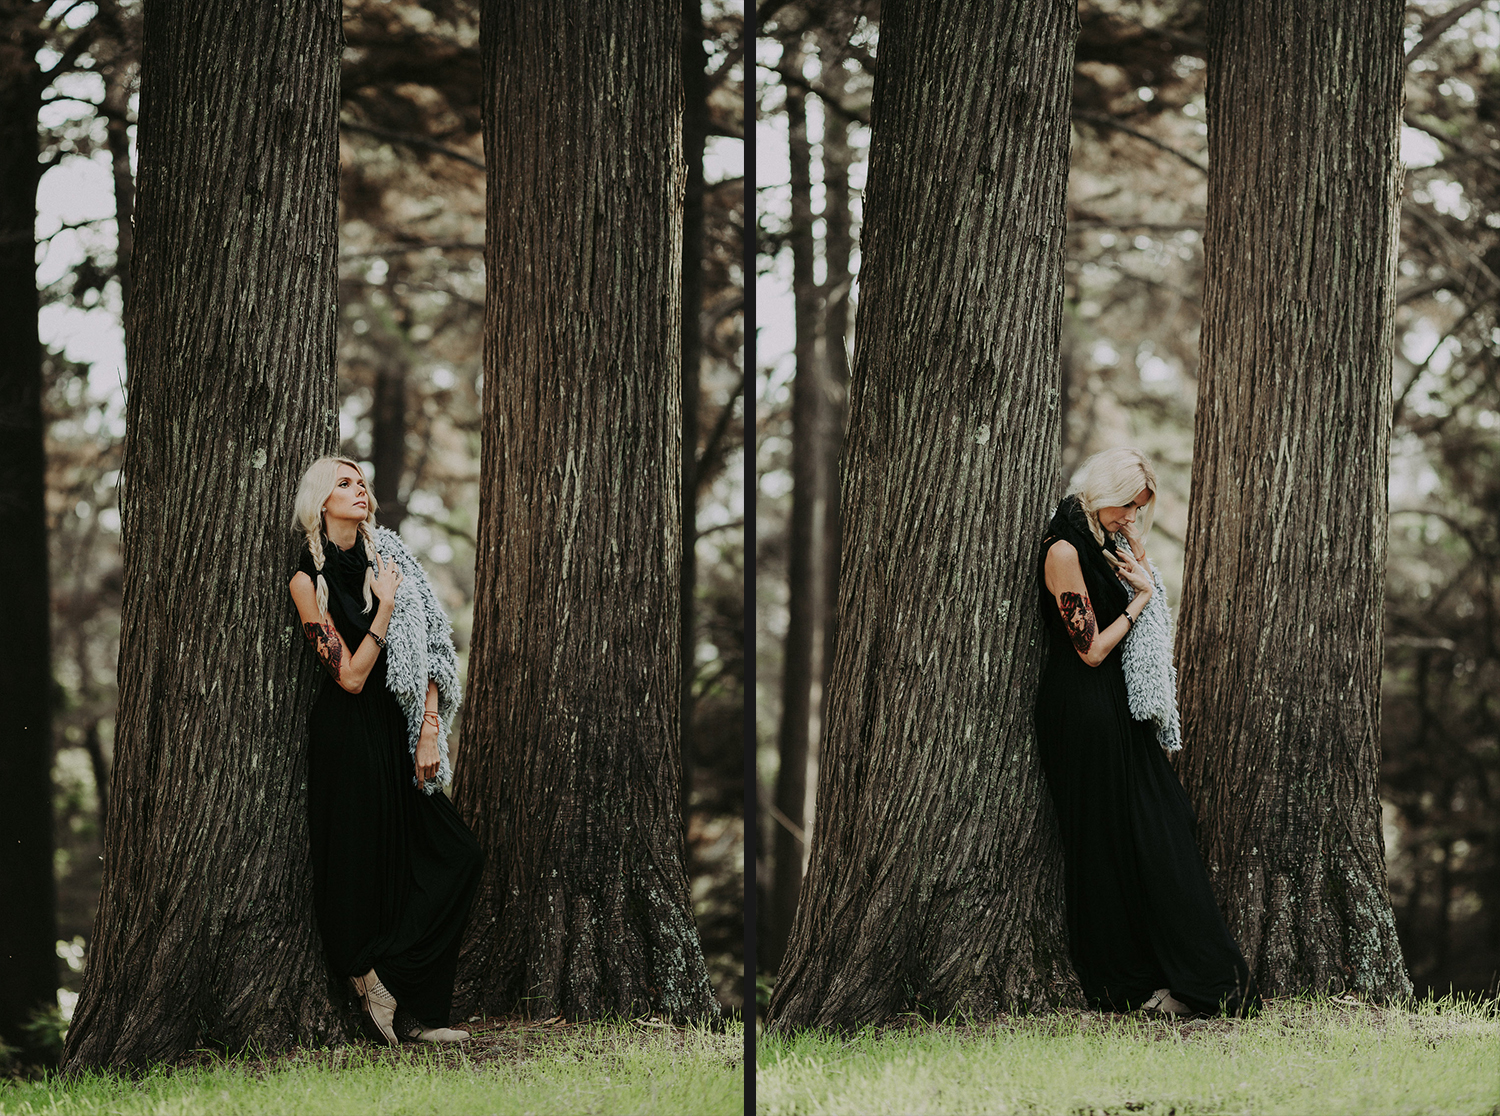 Image of a girl leaning to the tree